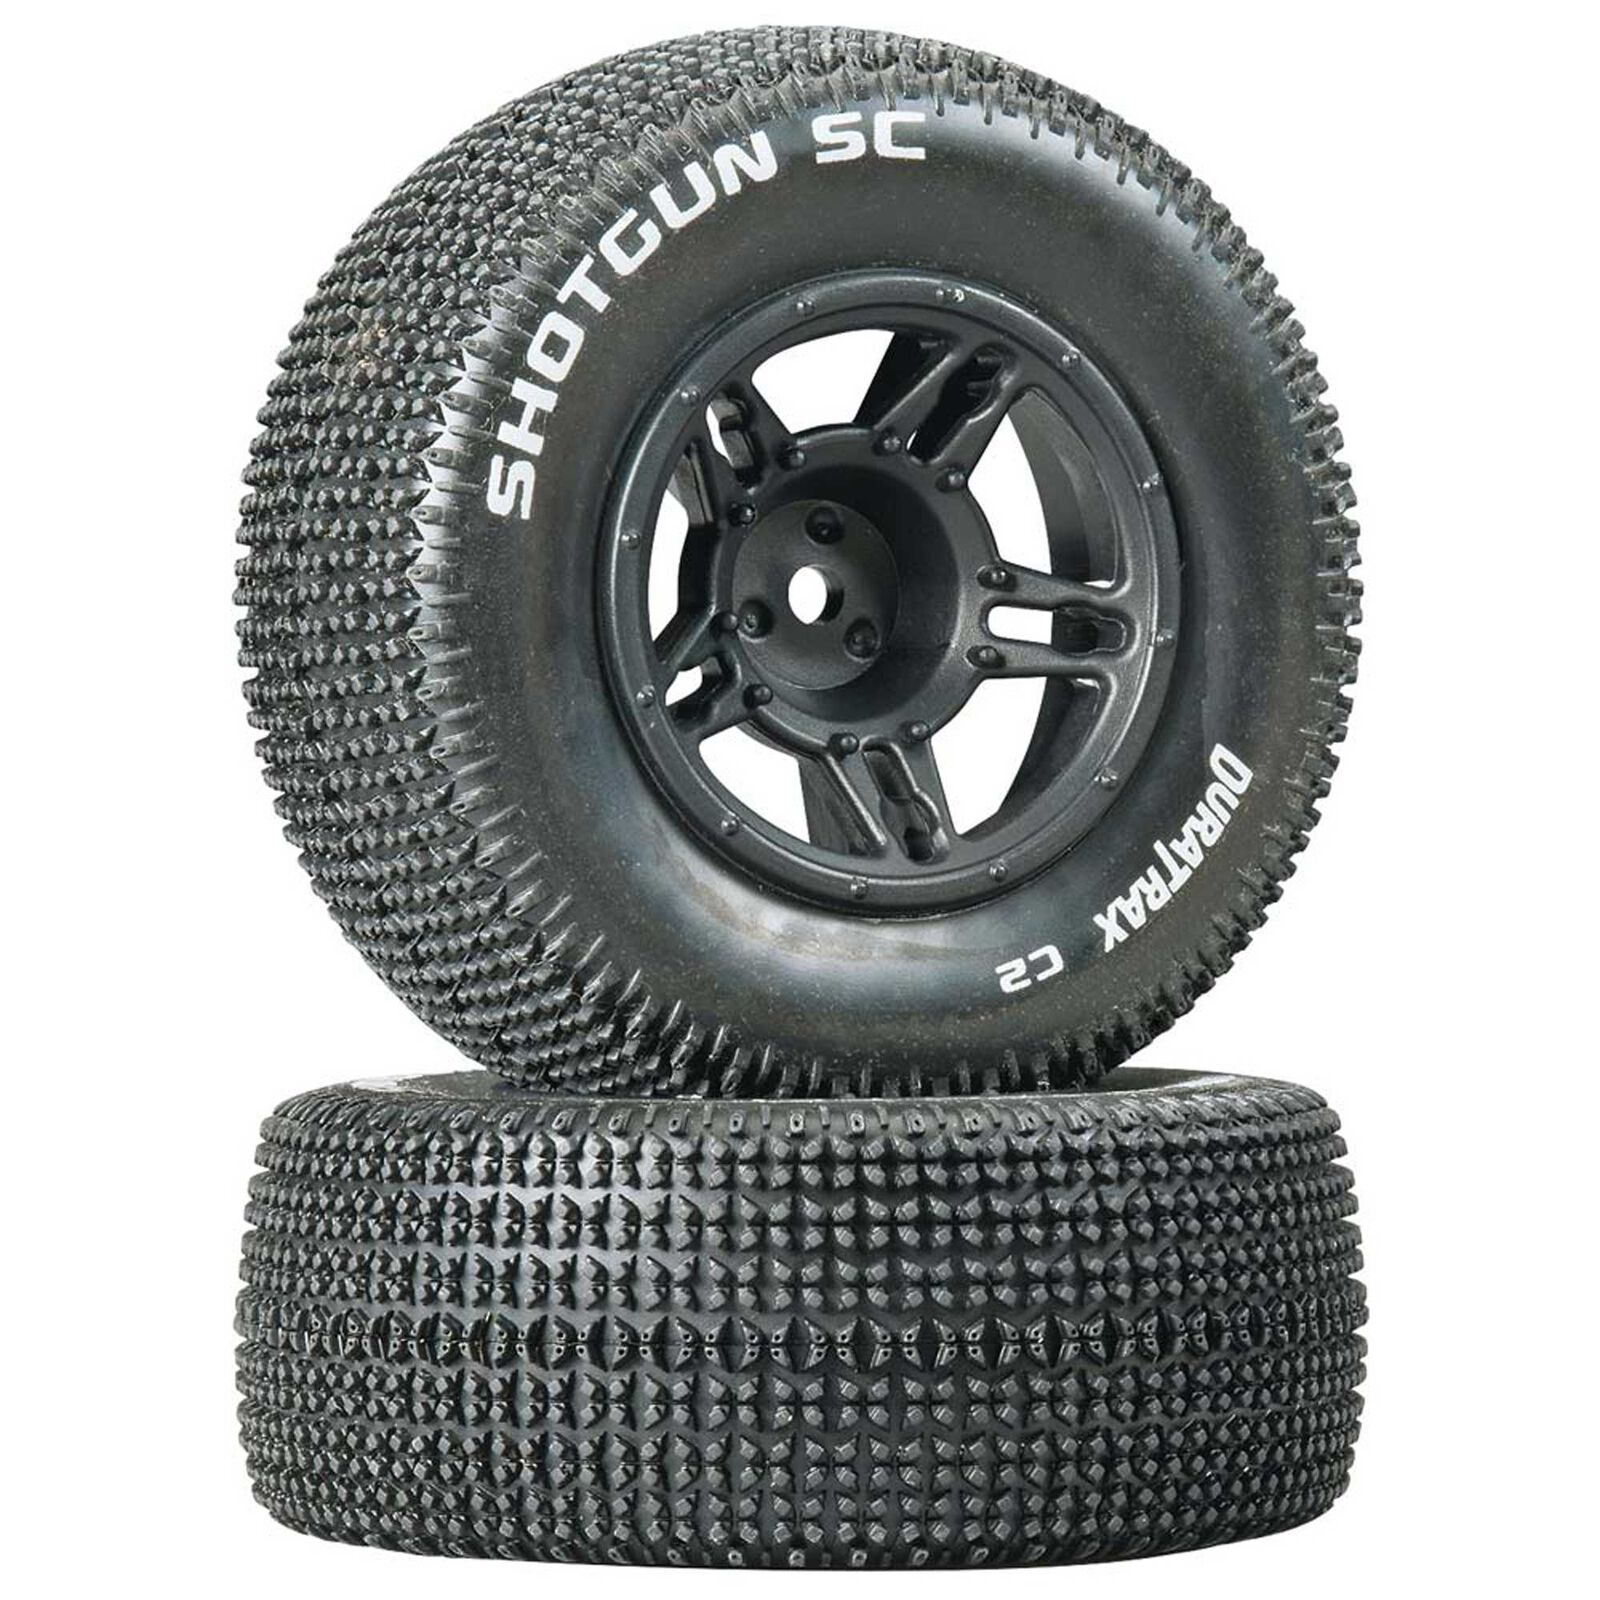 1/10 Shotgun SC Tire C2 Mounted Front Tires: Slash (2